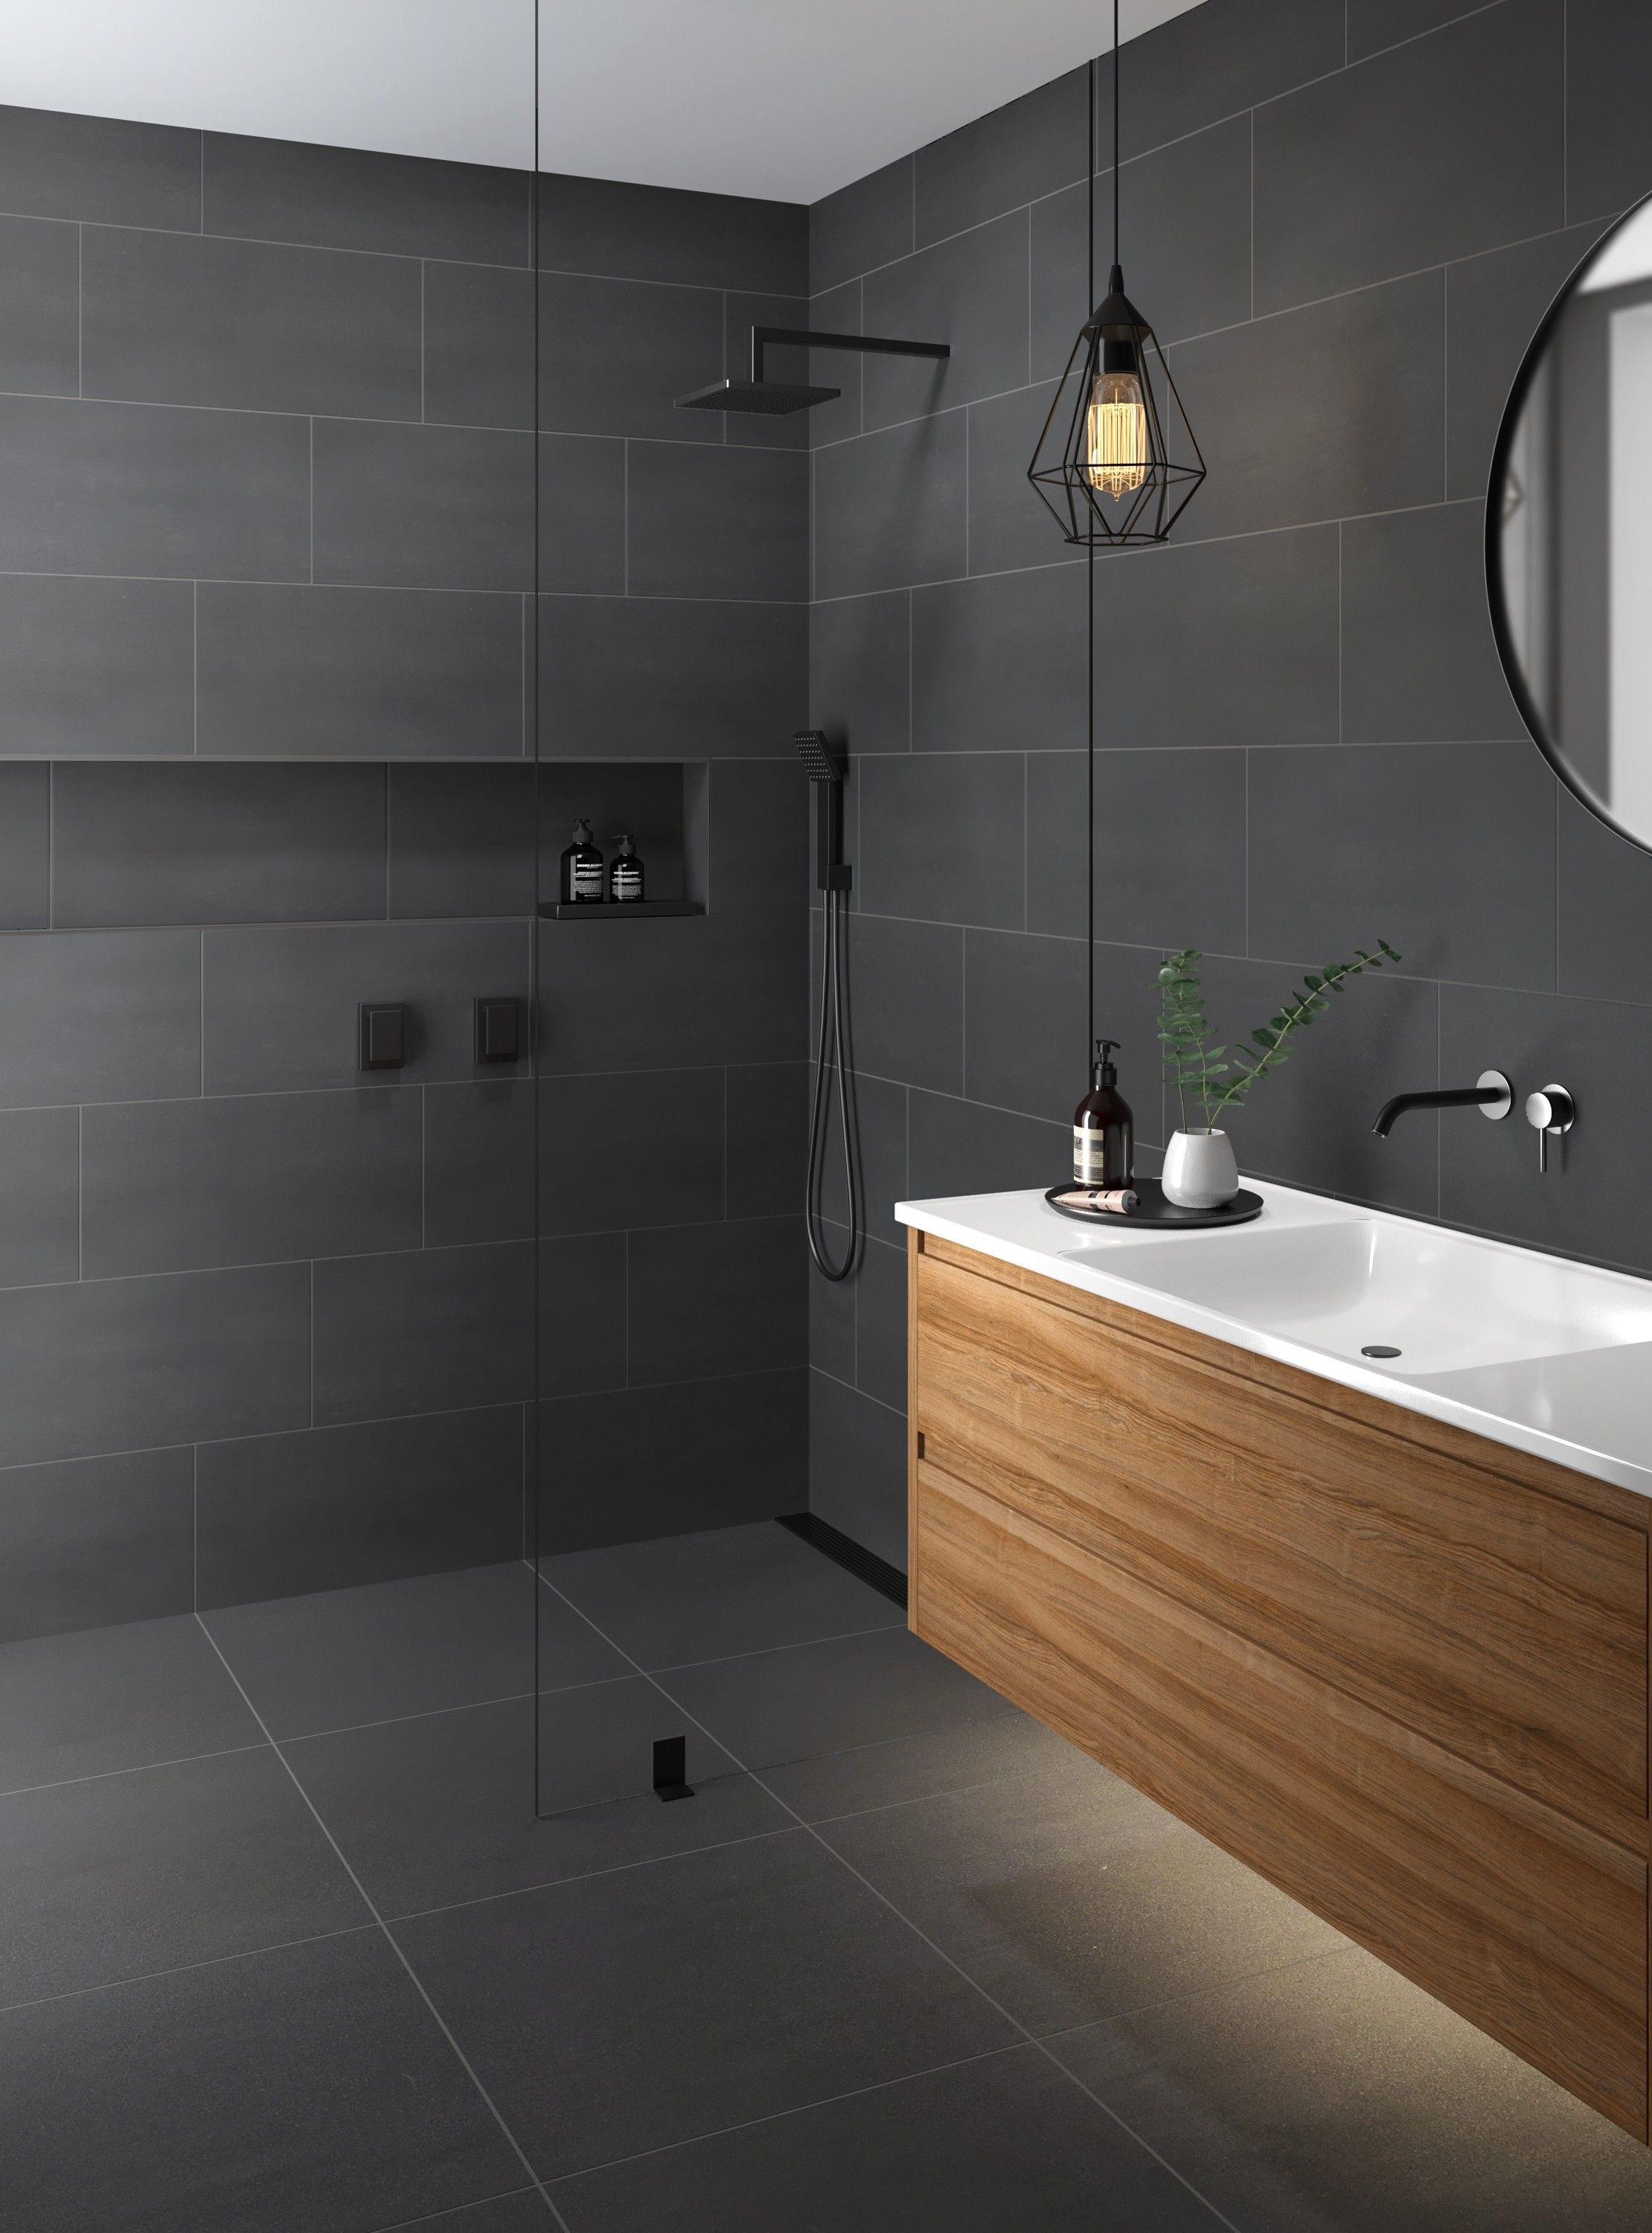 Doblo Matt Grey Porcelain In 2020 Grey Bathroom Tiles Commercial Bathroom Designs Bathroom Interior